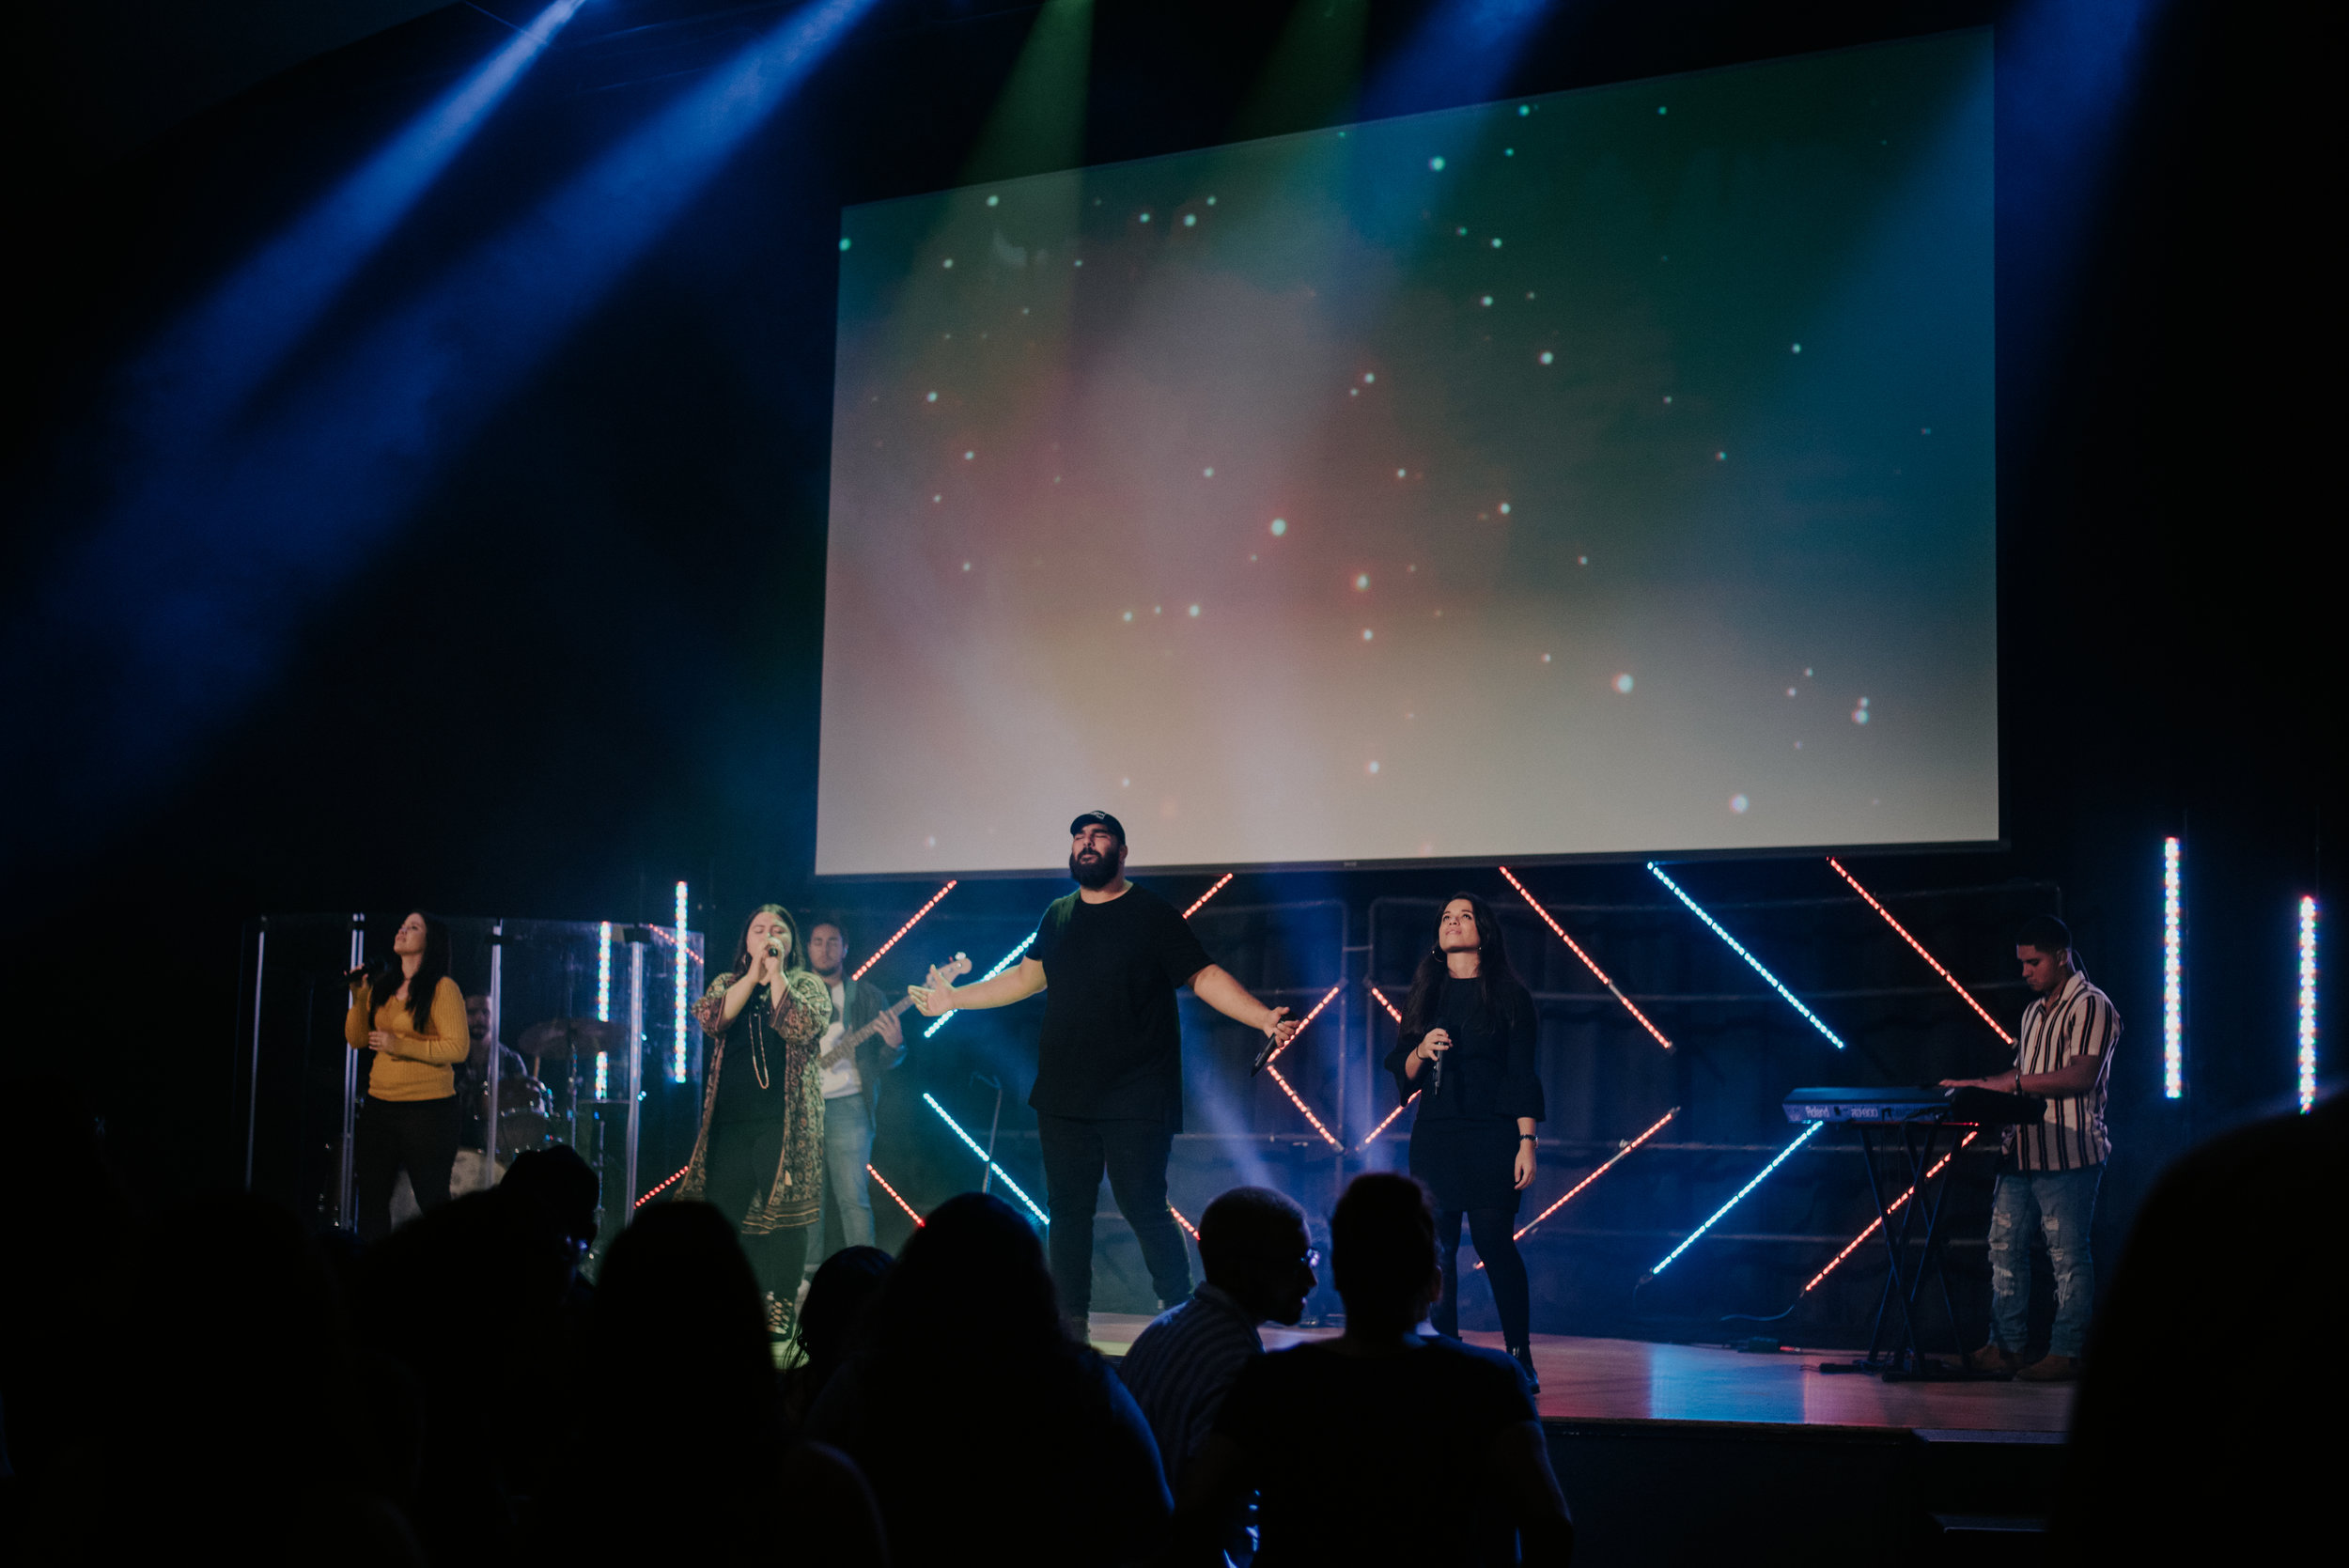 5. EXPANSION - This offering accelerates the vision that we share here at Journey—to start new campuses and get our current portable campus into a permanent facility.